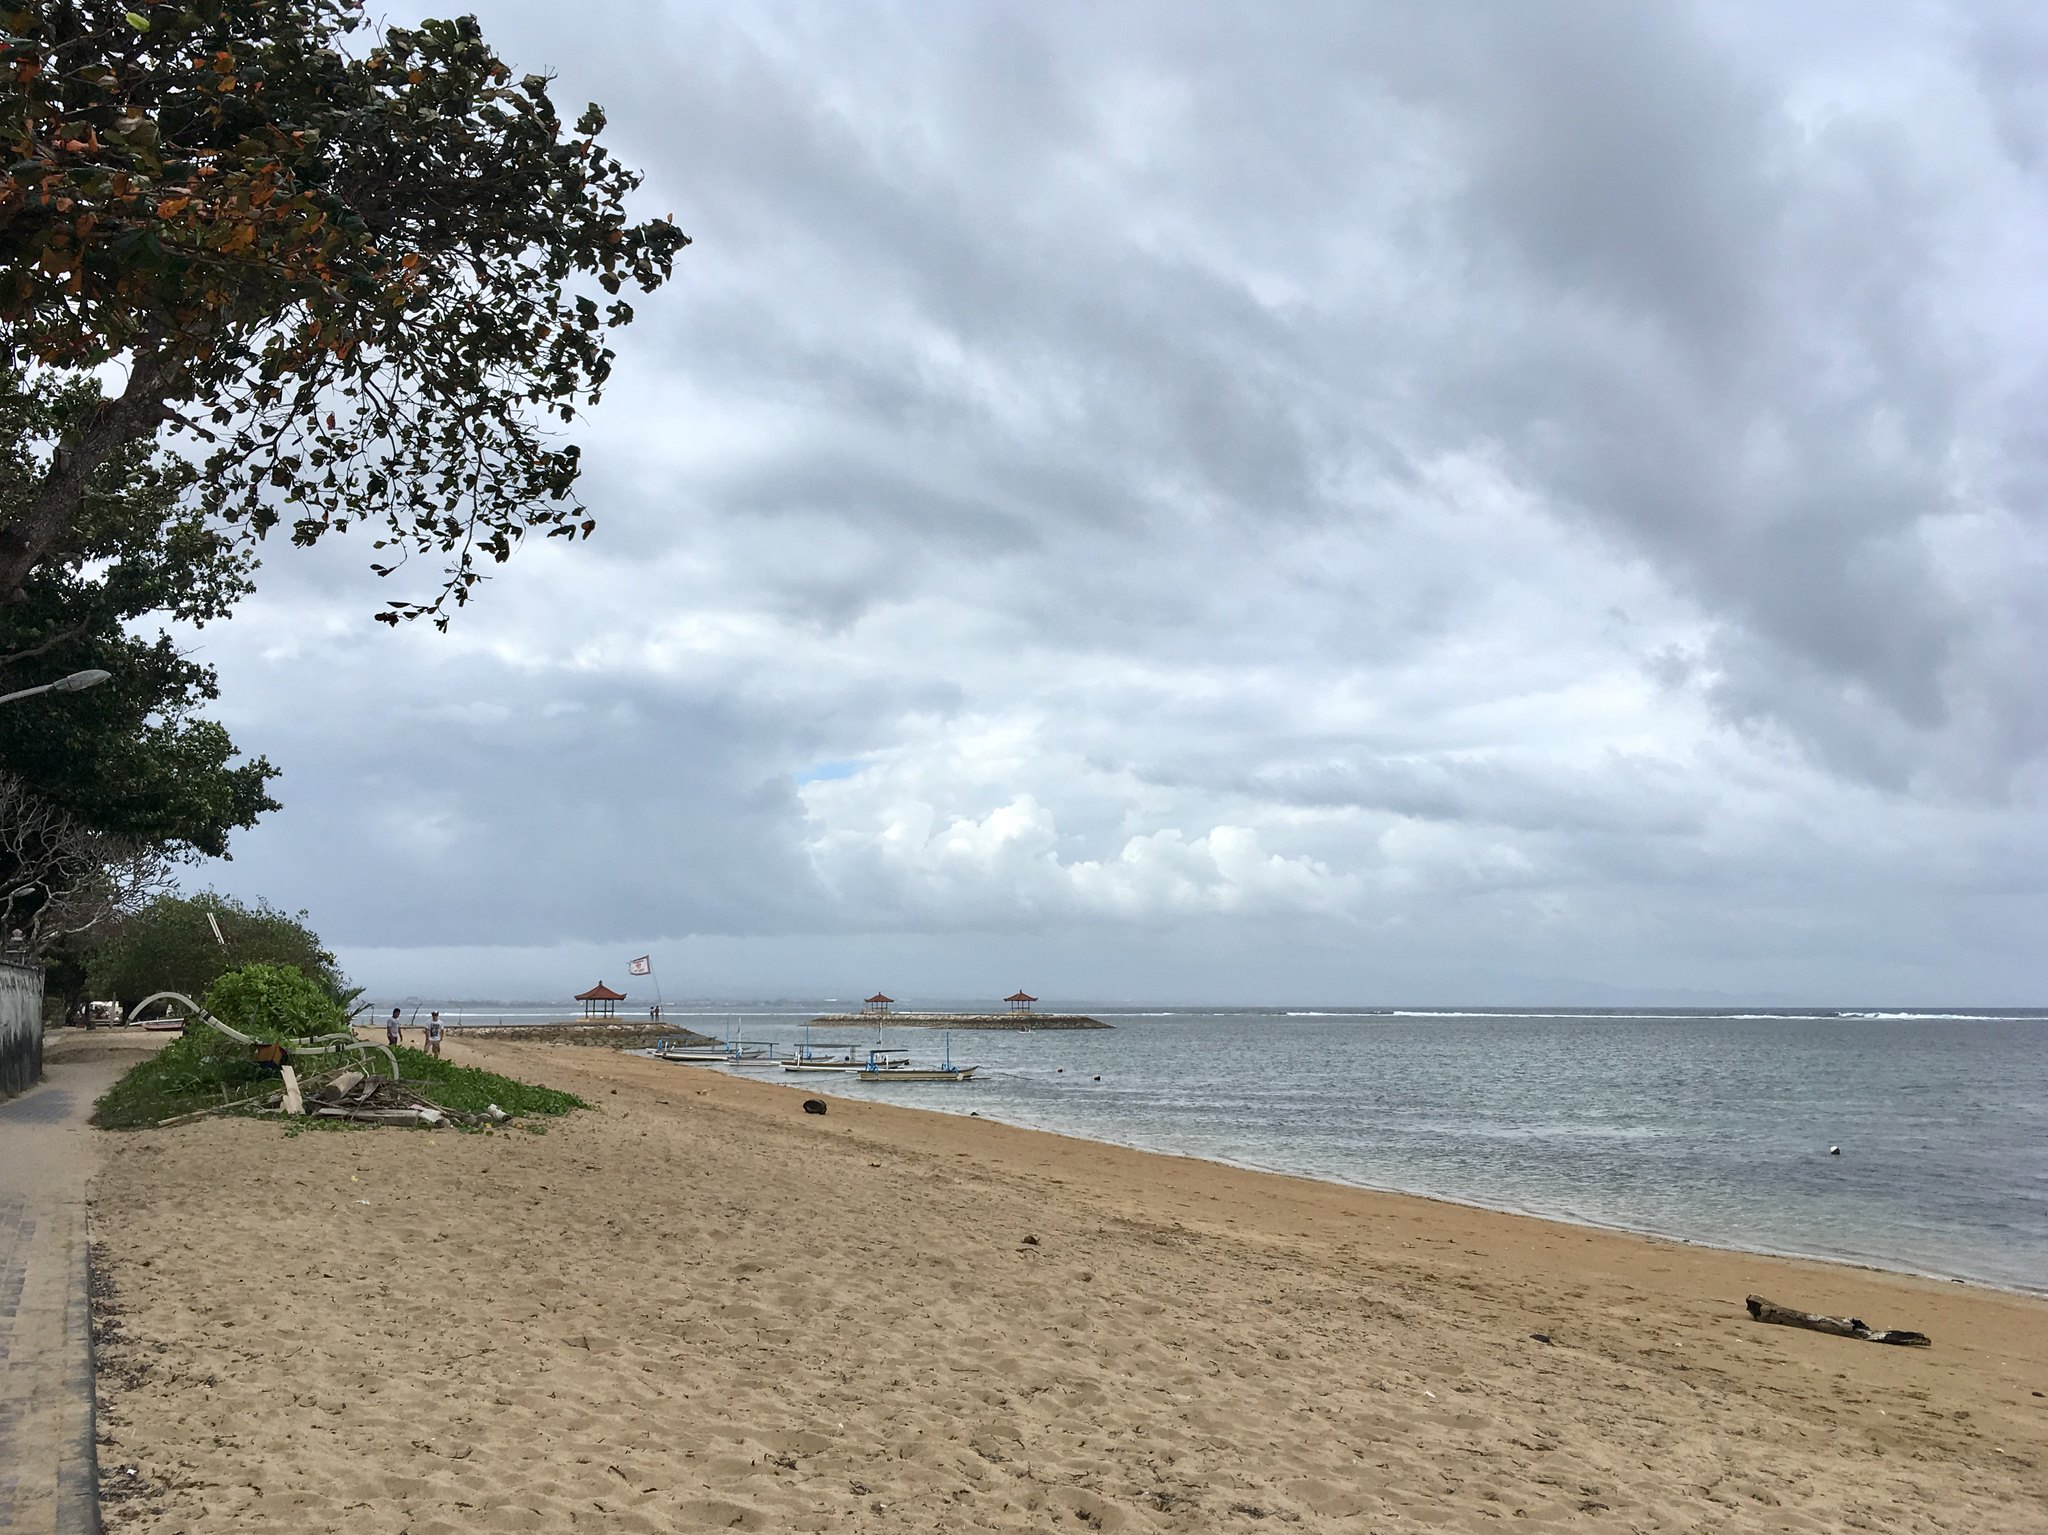 Cloudy beach in Sanur